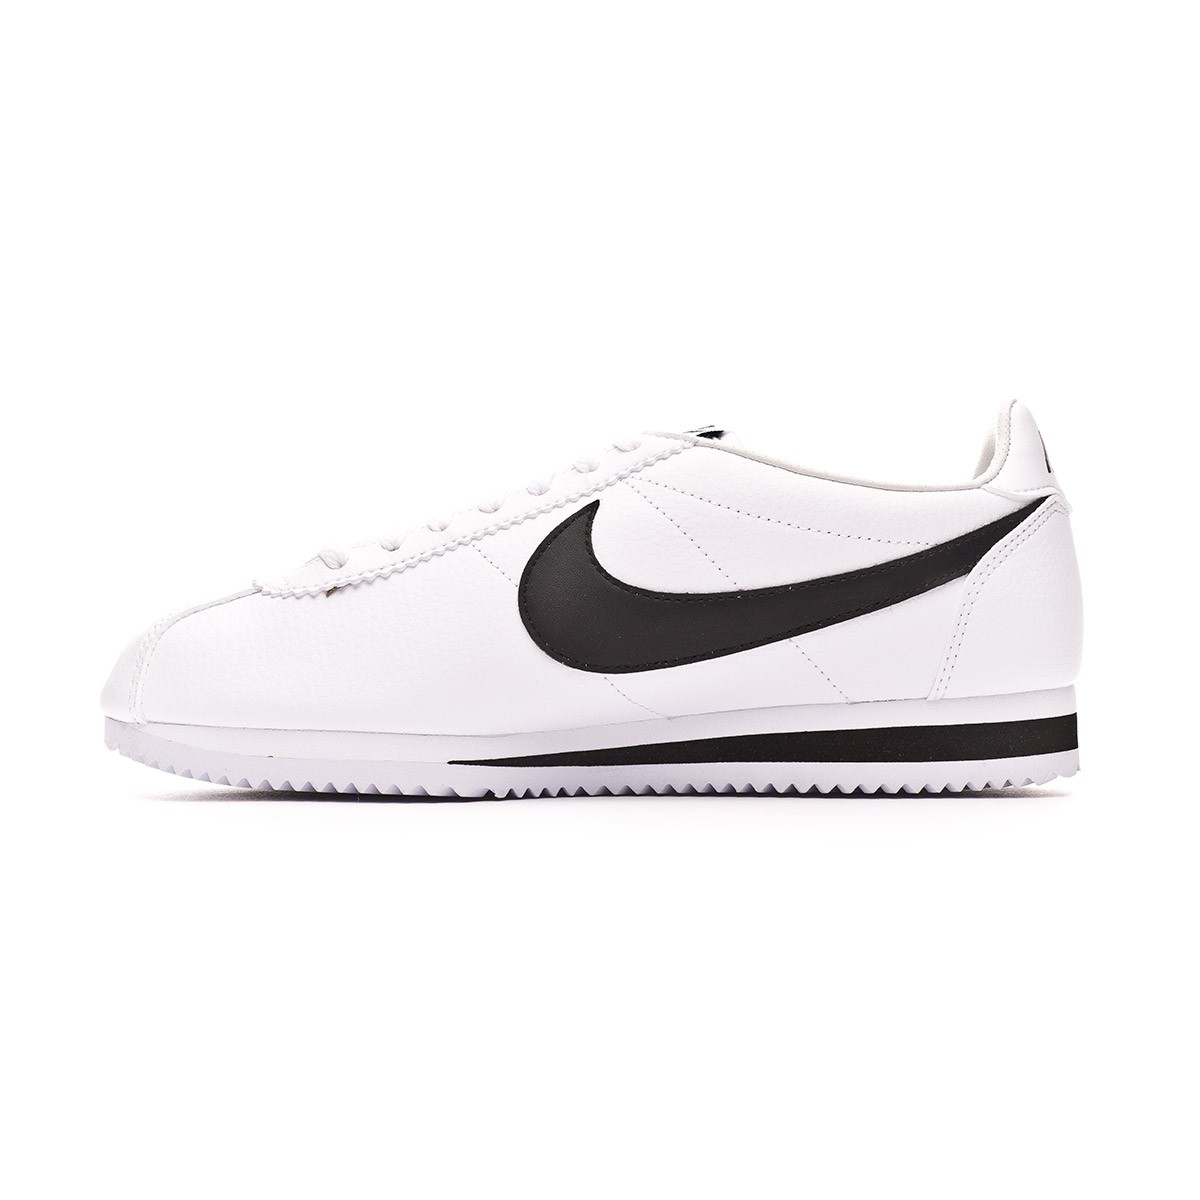 8ad4b6866 Tenis Nike Classic Cortez Leather 2019 White-Black - Tienda de fútbol  Fútbol Emotion